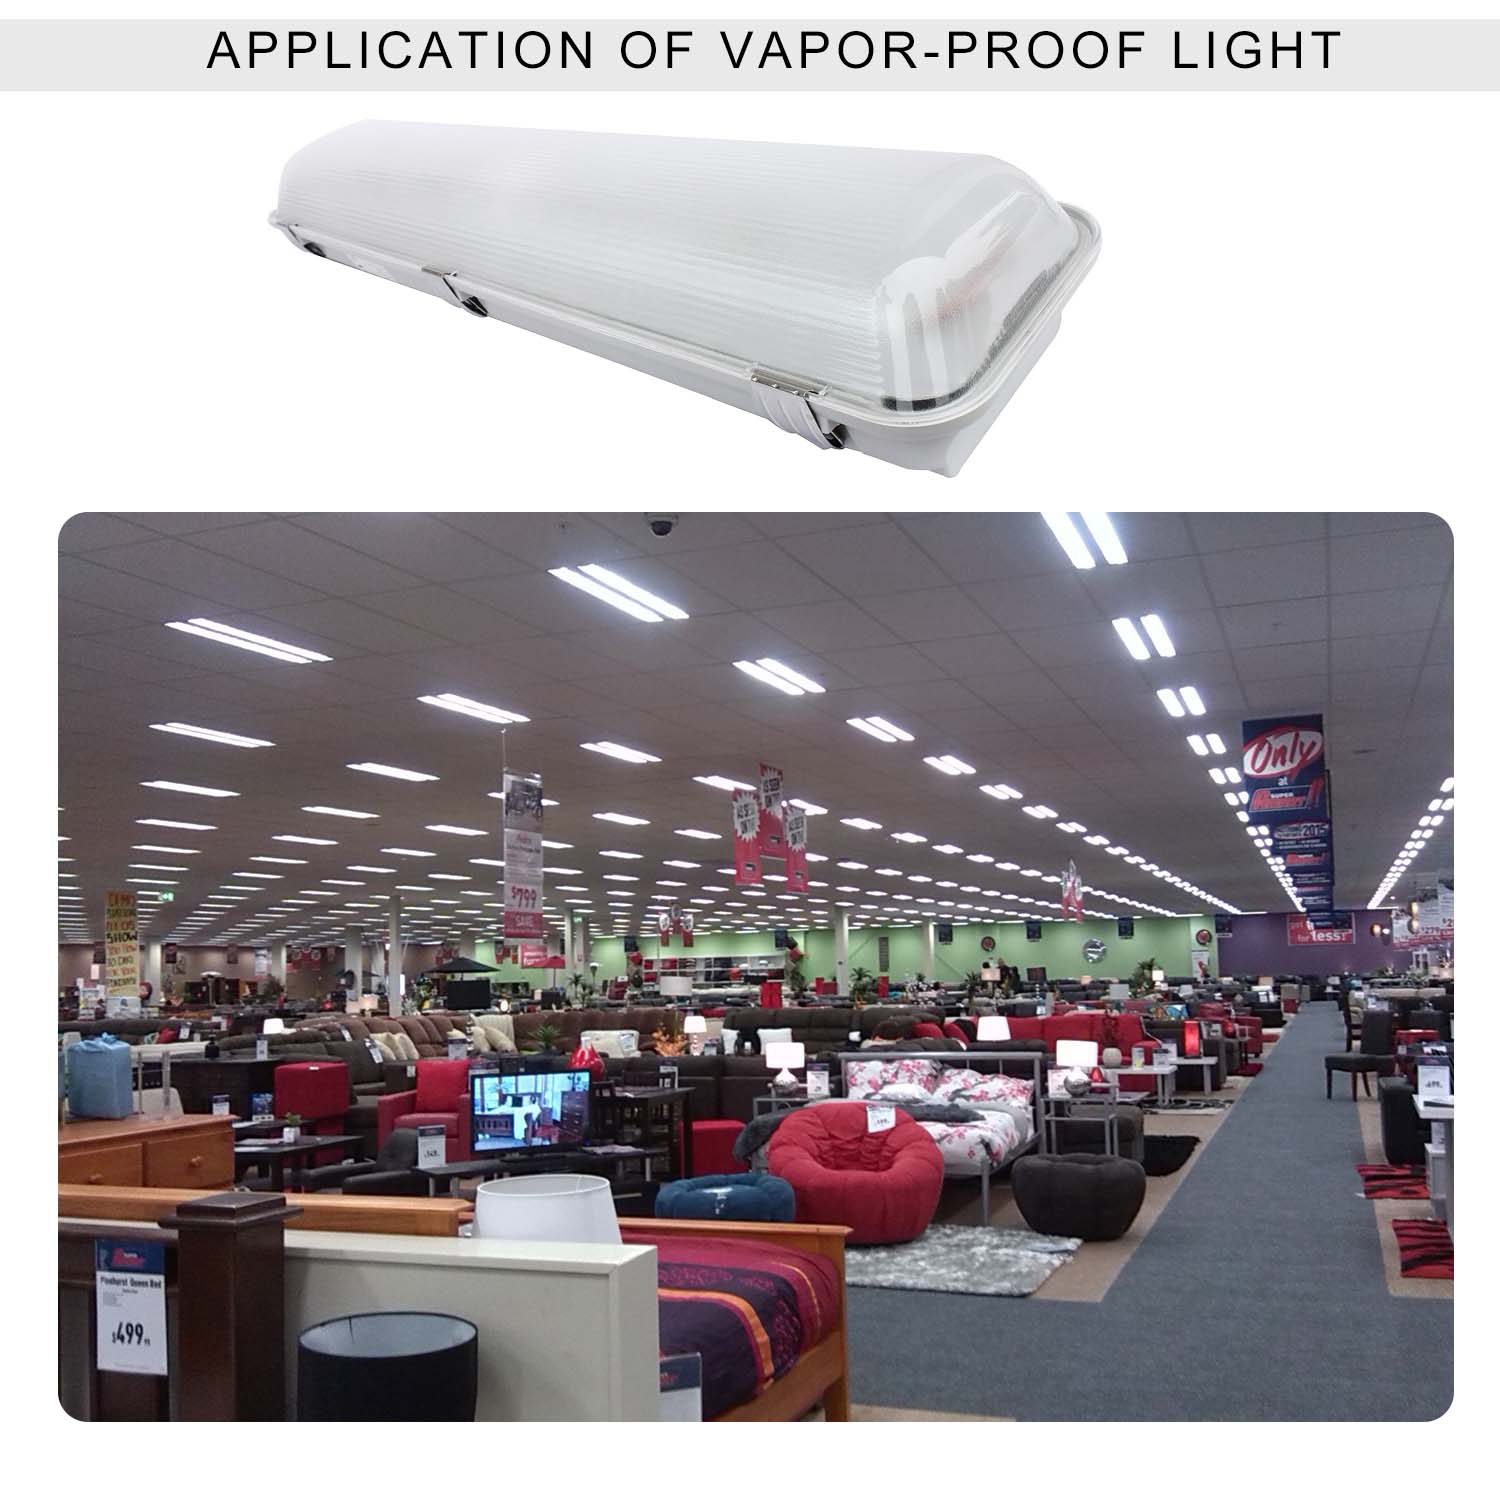 Kawell LED Vapor Tight 18W Waterproof IP65 100-277V 2 Ft.Super-Energy Saving Fluorescent Wet Location 3-Stage-Dimmable Fixture Fits 5 Warrenty White